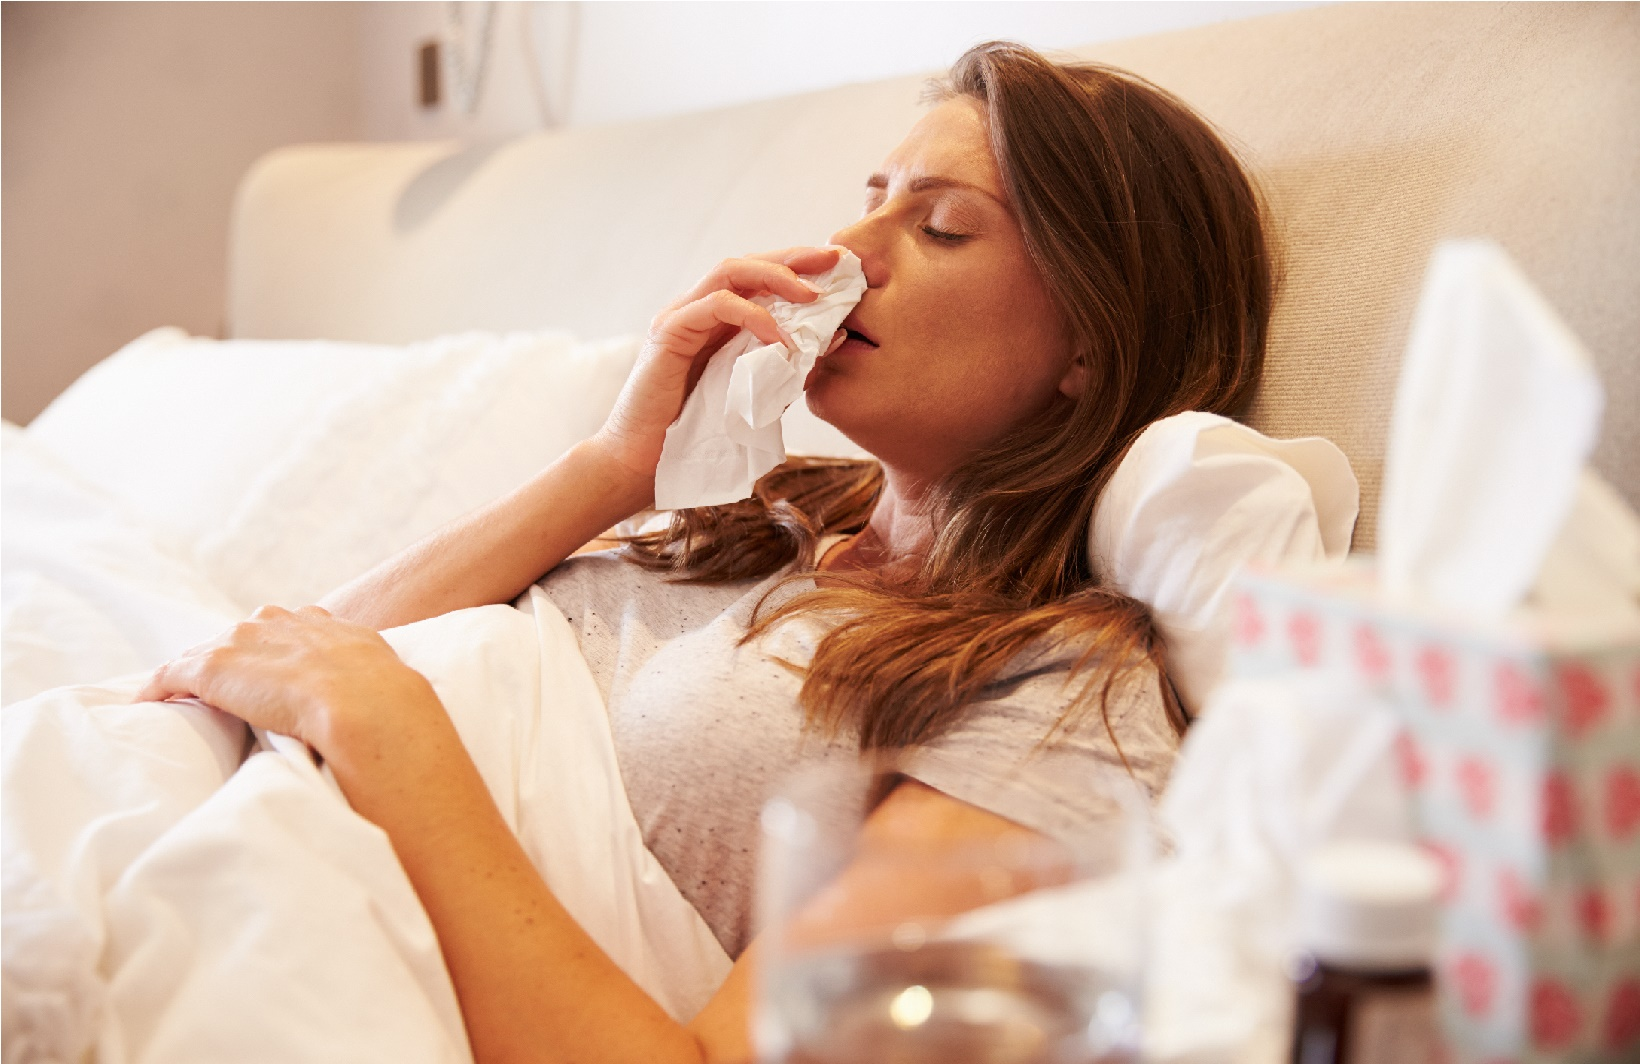 Woman Suffering From Cold and Flu Symptoms Lying In Bed With Tissue